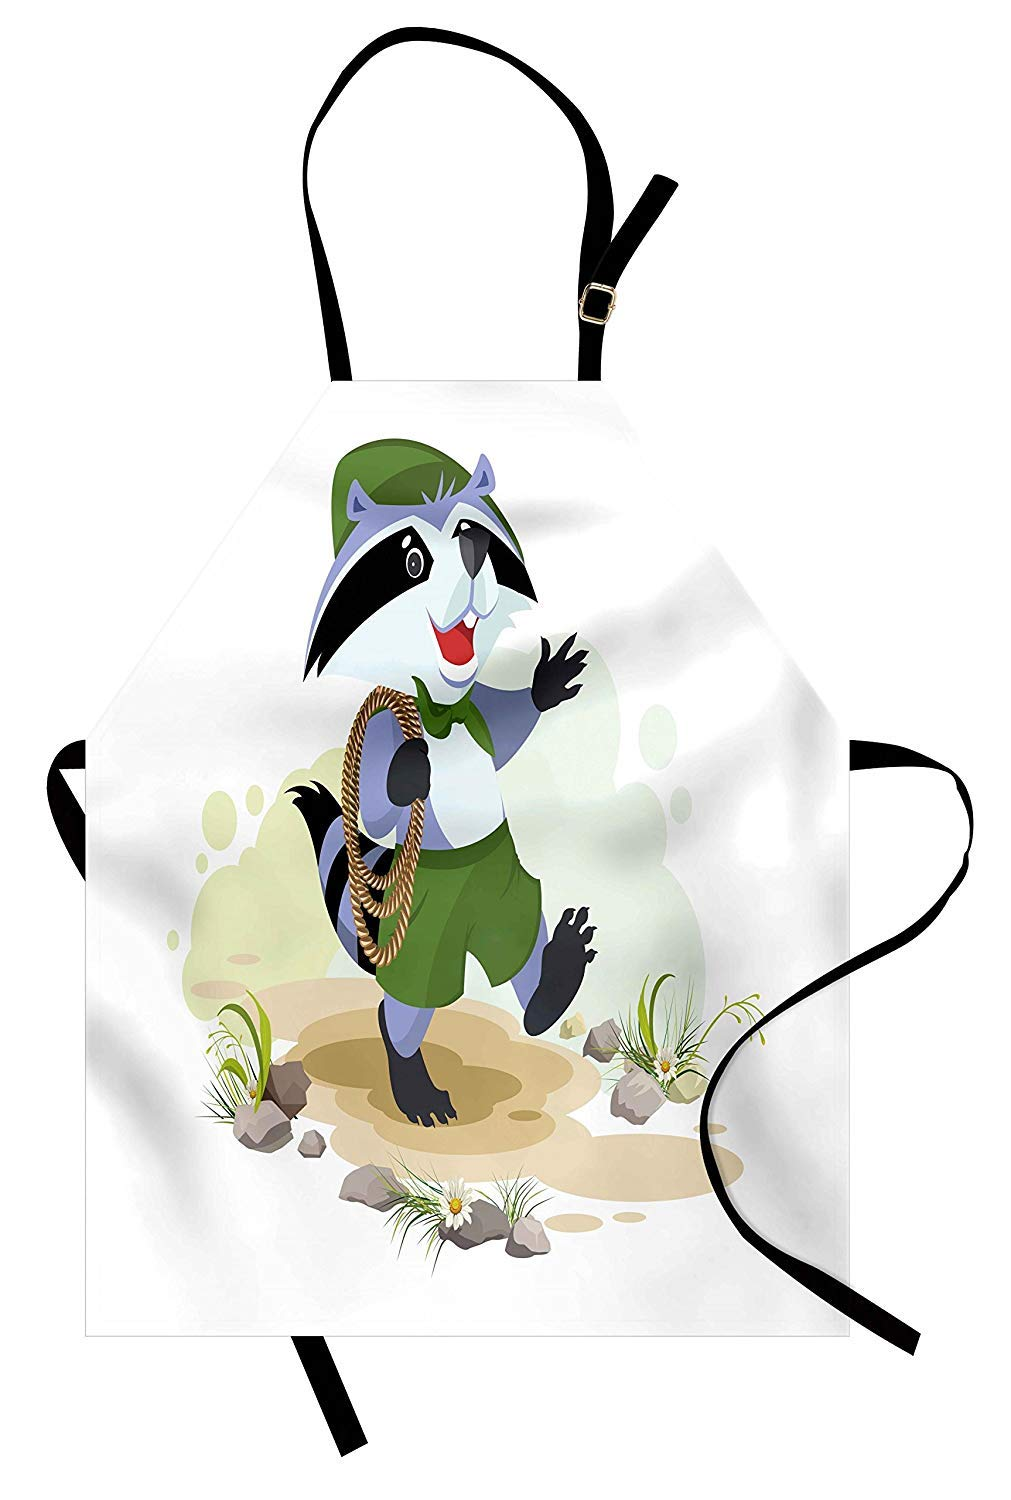 T&H Home Raccoon Apron, Comic Animal Scout Carries Rope Walking in The Forest Boy Camping Joyful Cartoon, Unisex Kitchen Bib Apron Adjustable for Kids Adults Cooking Baking Gardening, Multicolor by T&H Home